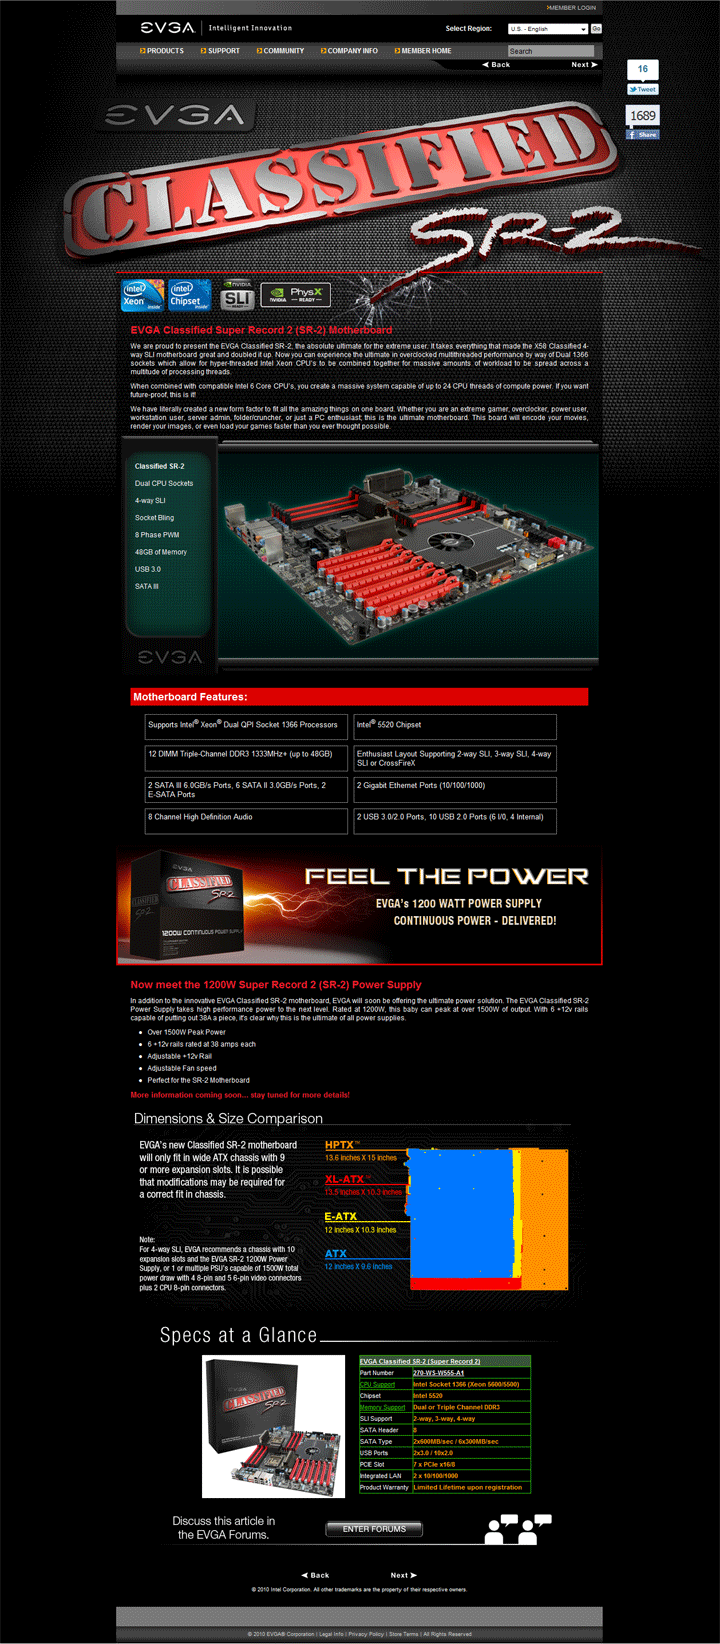 spec EVGA Classified Super Record 2 (SR 2) Motherboard